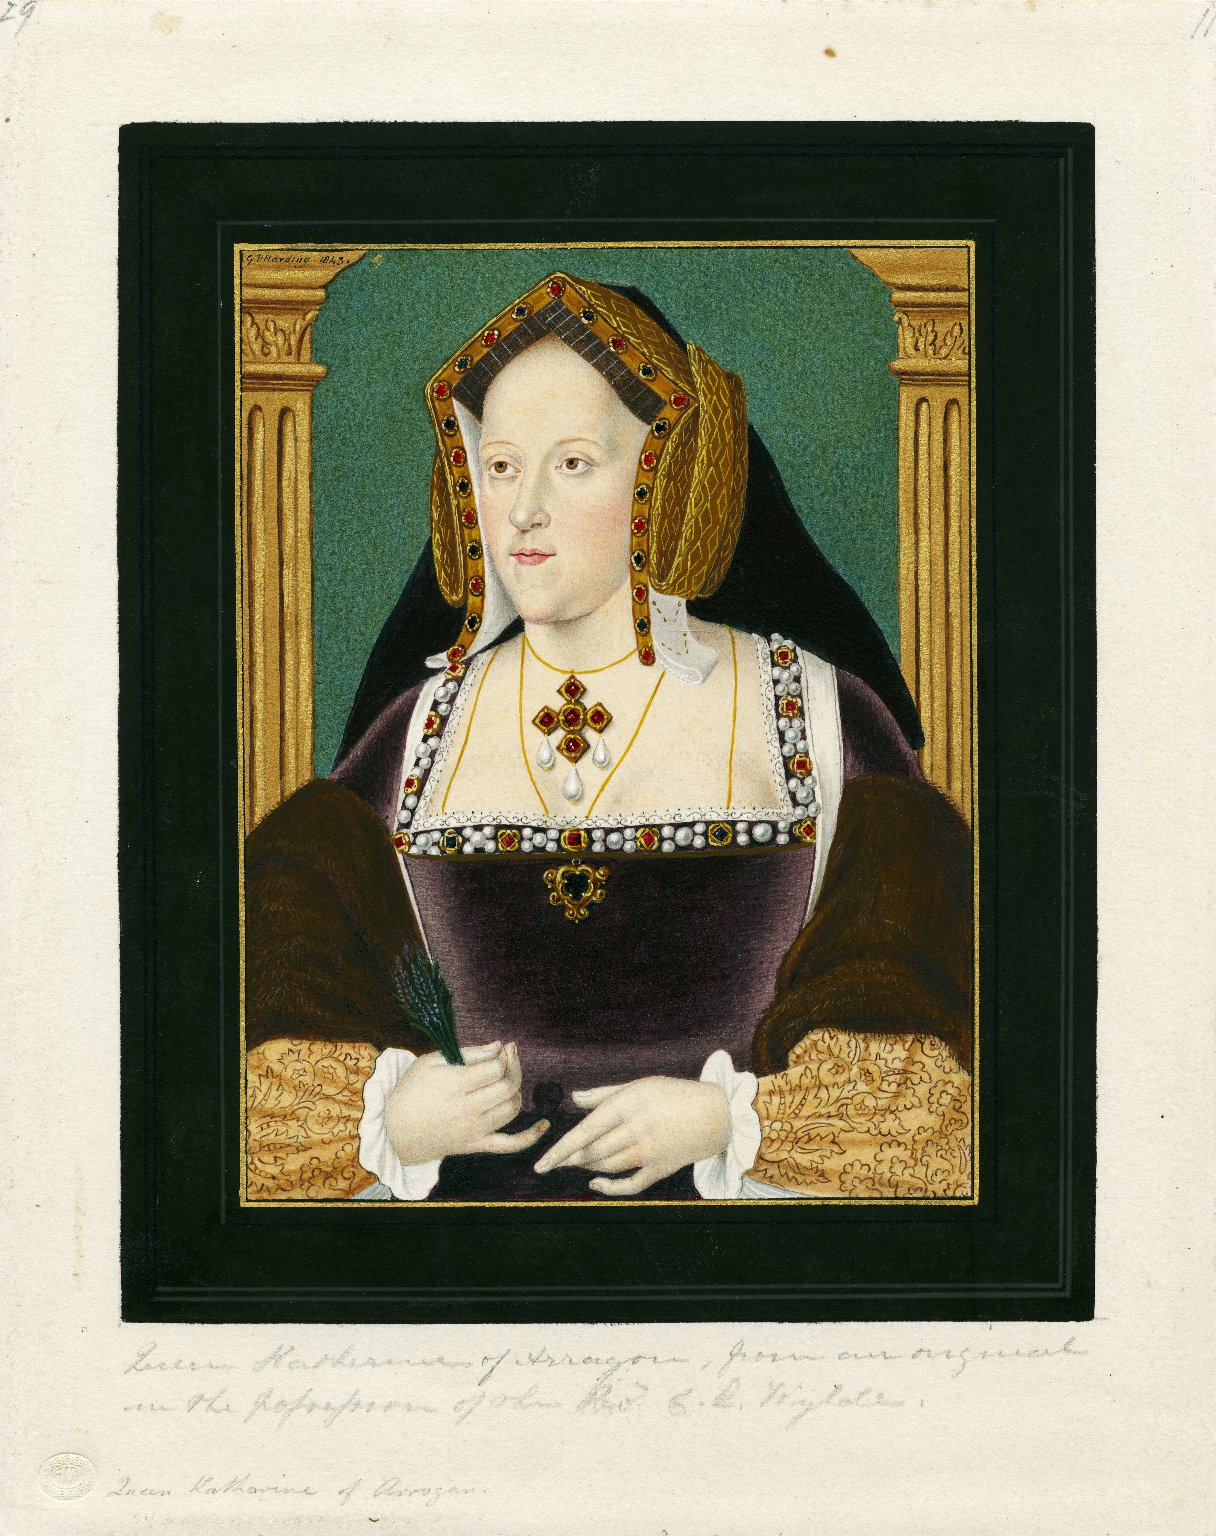 Queen Katherine of Arragon, from an original in the possession of the Rev. G. E. Wylate [graphic].